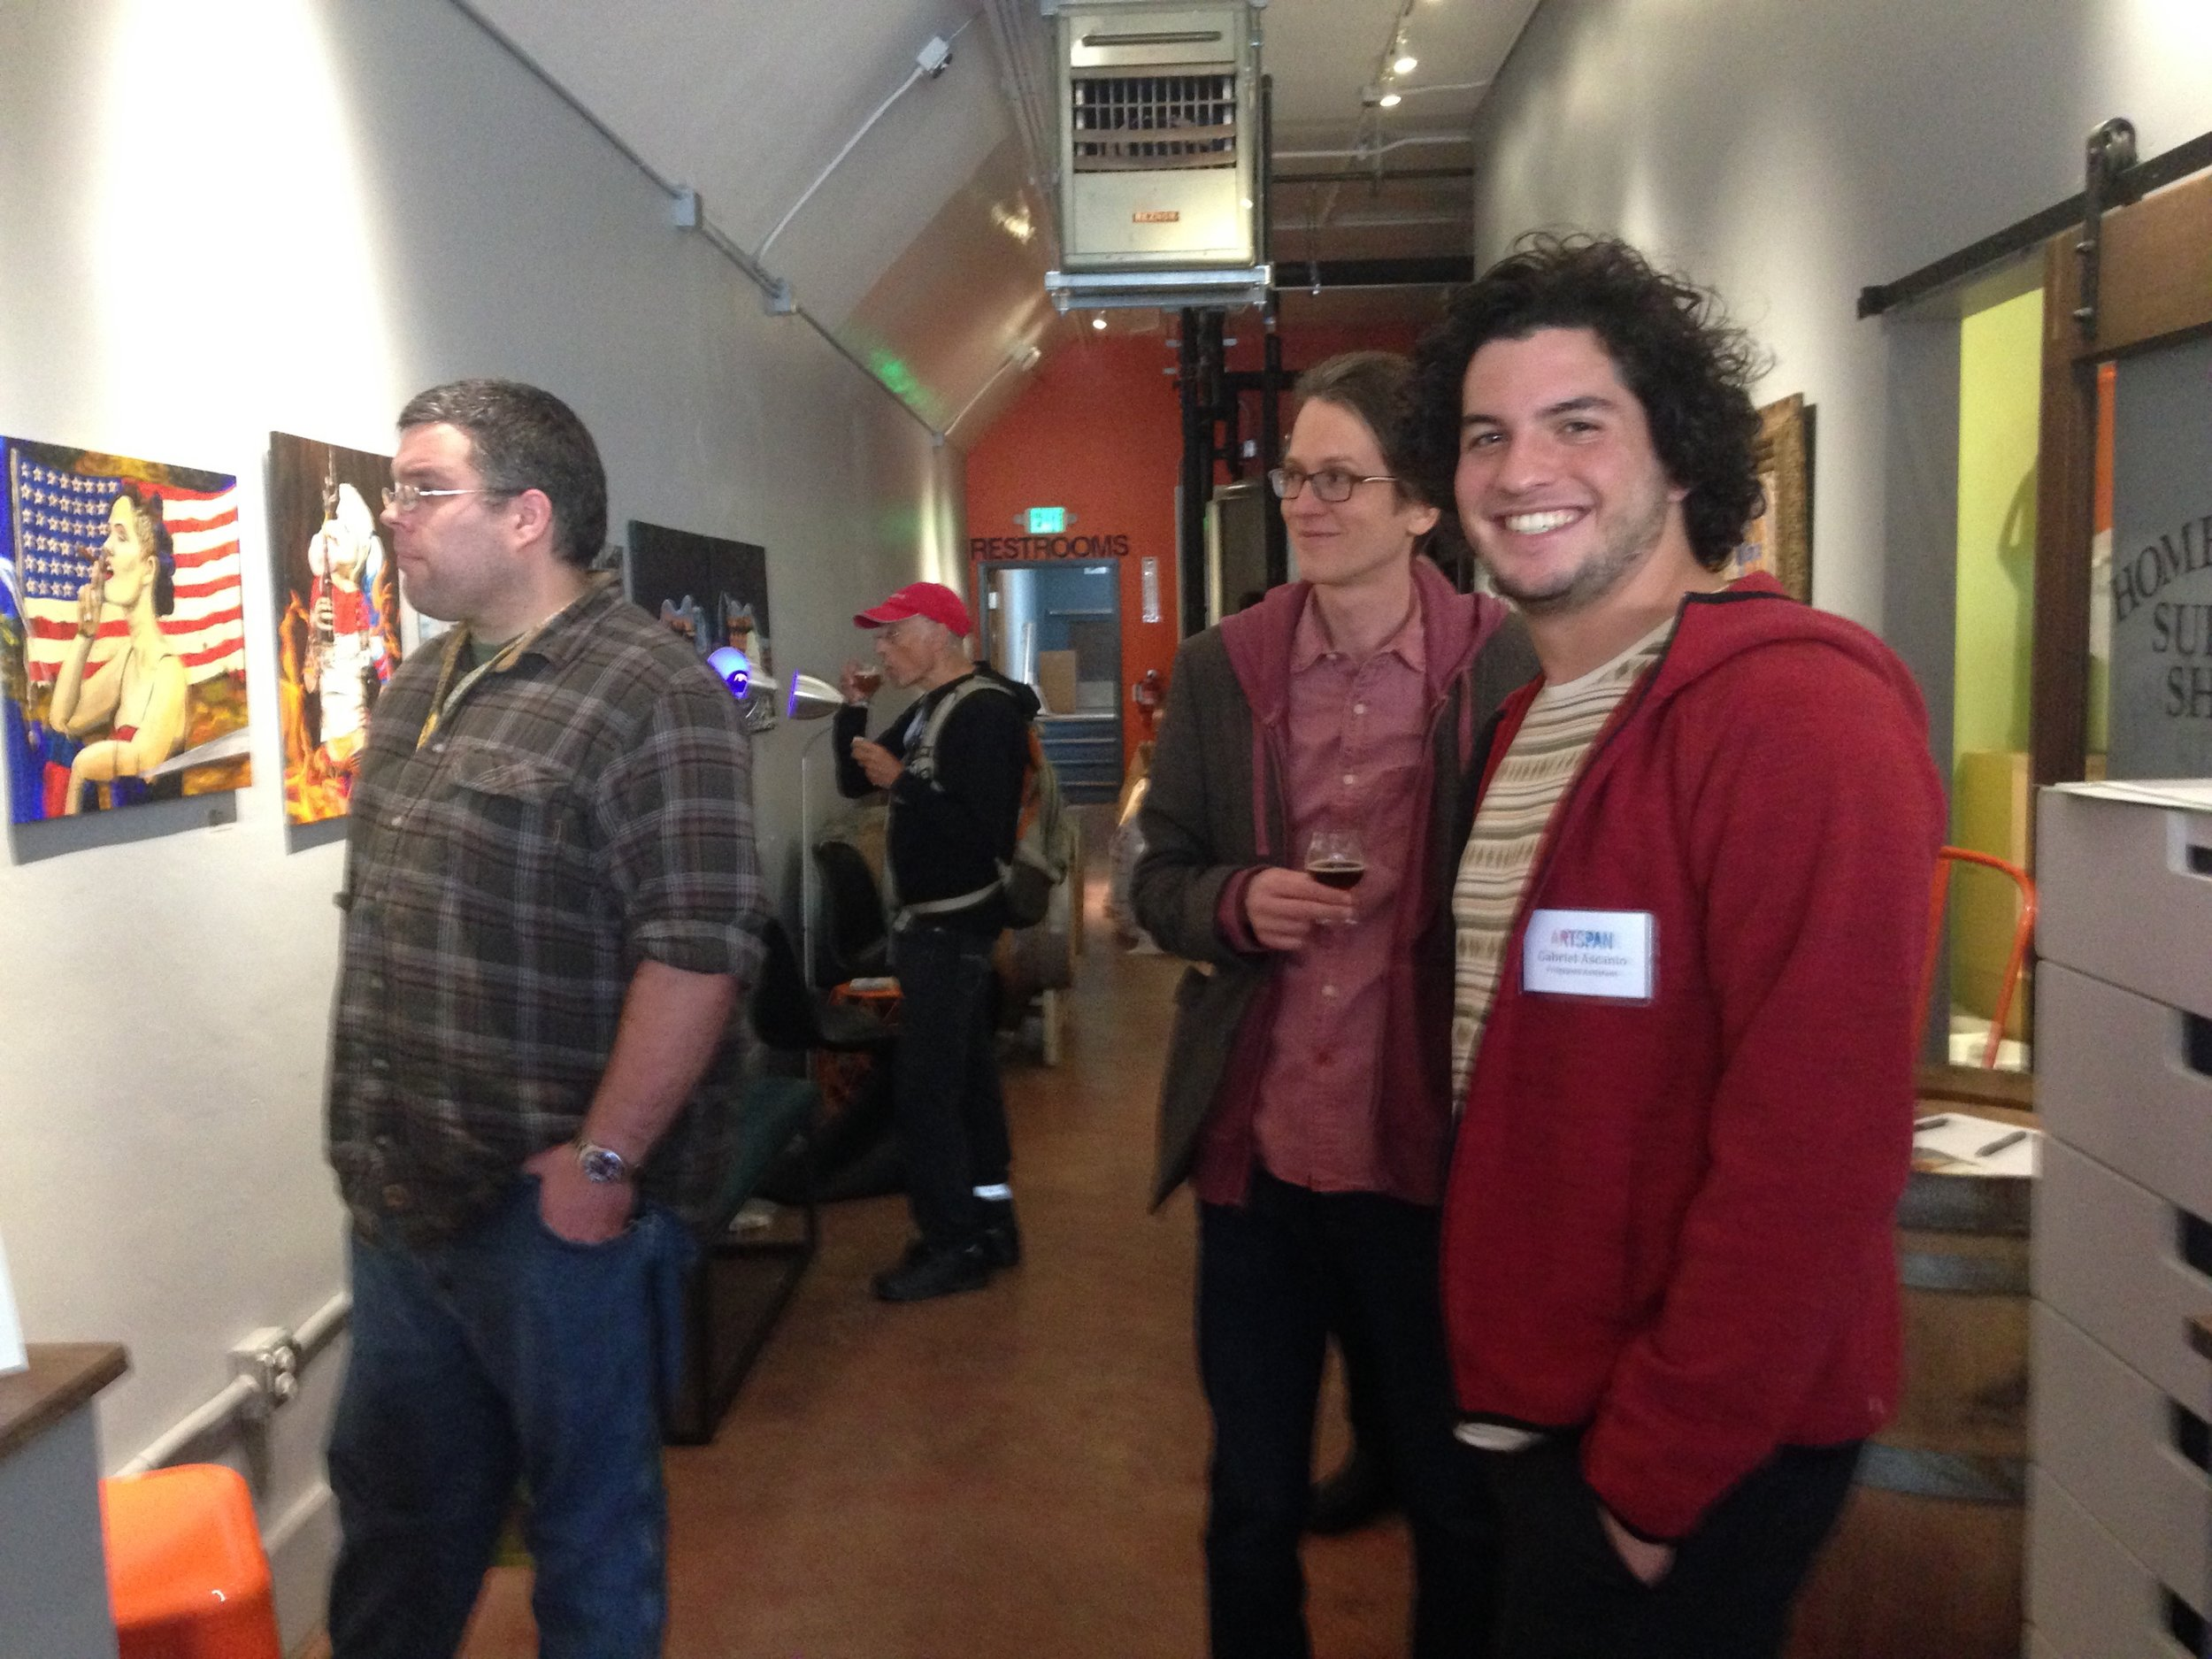 ArtSpan Artist Reception at Ferment Drink Repeat Brewery in San Francisco